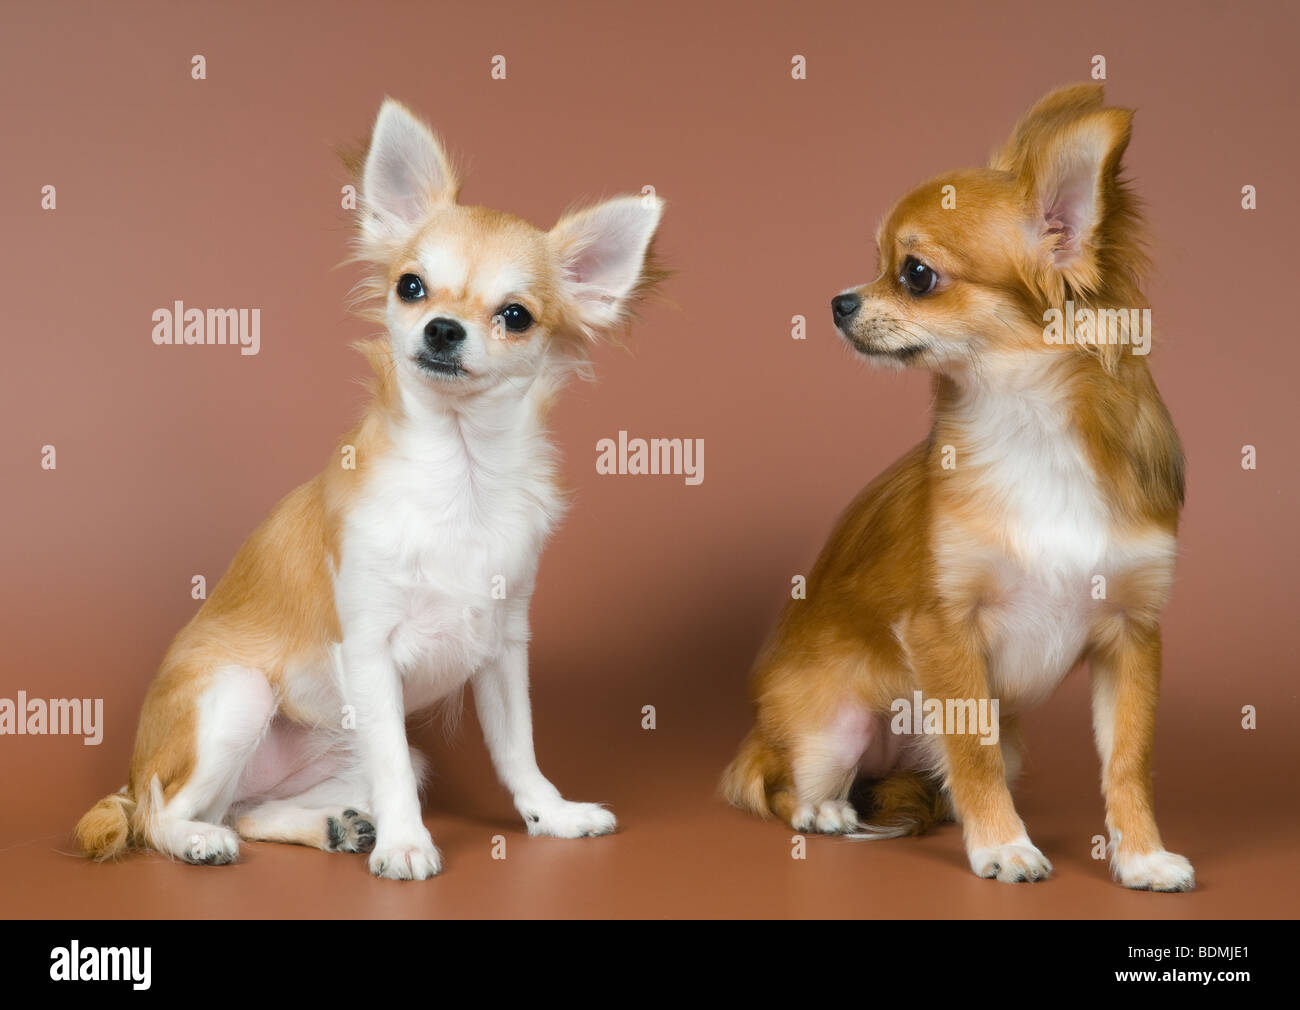 Two puppies chihuahua in studio - Stock Image